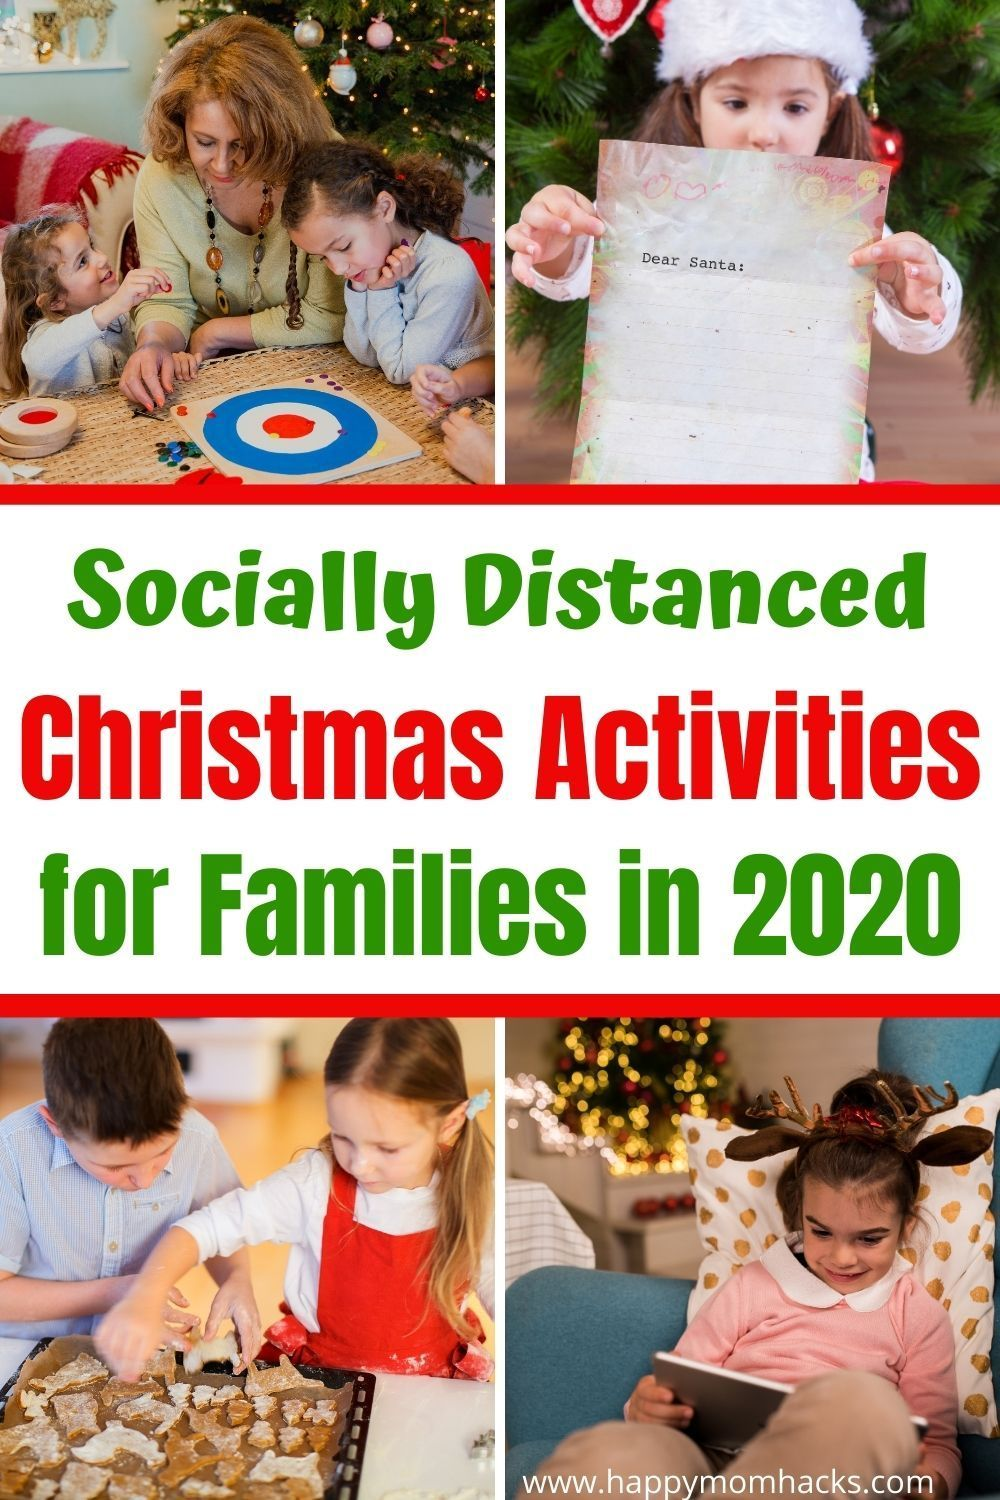 Social Distanced Christmas Activities For Families In 2020 Happy Mom Hacks In 2020 Christmas Activities For Families Christmas Activities Holiday Traditions Kids